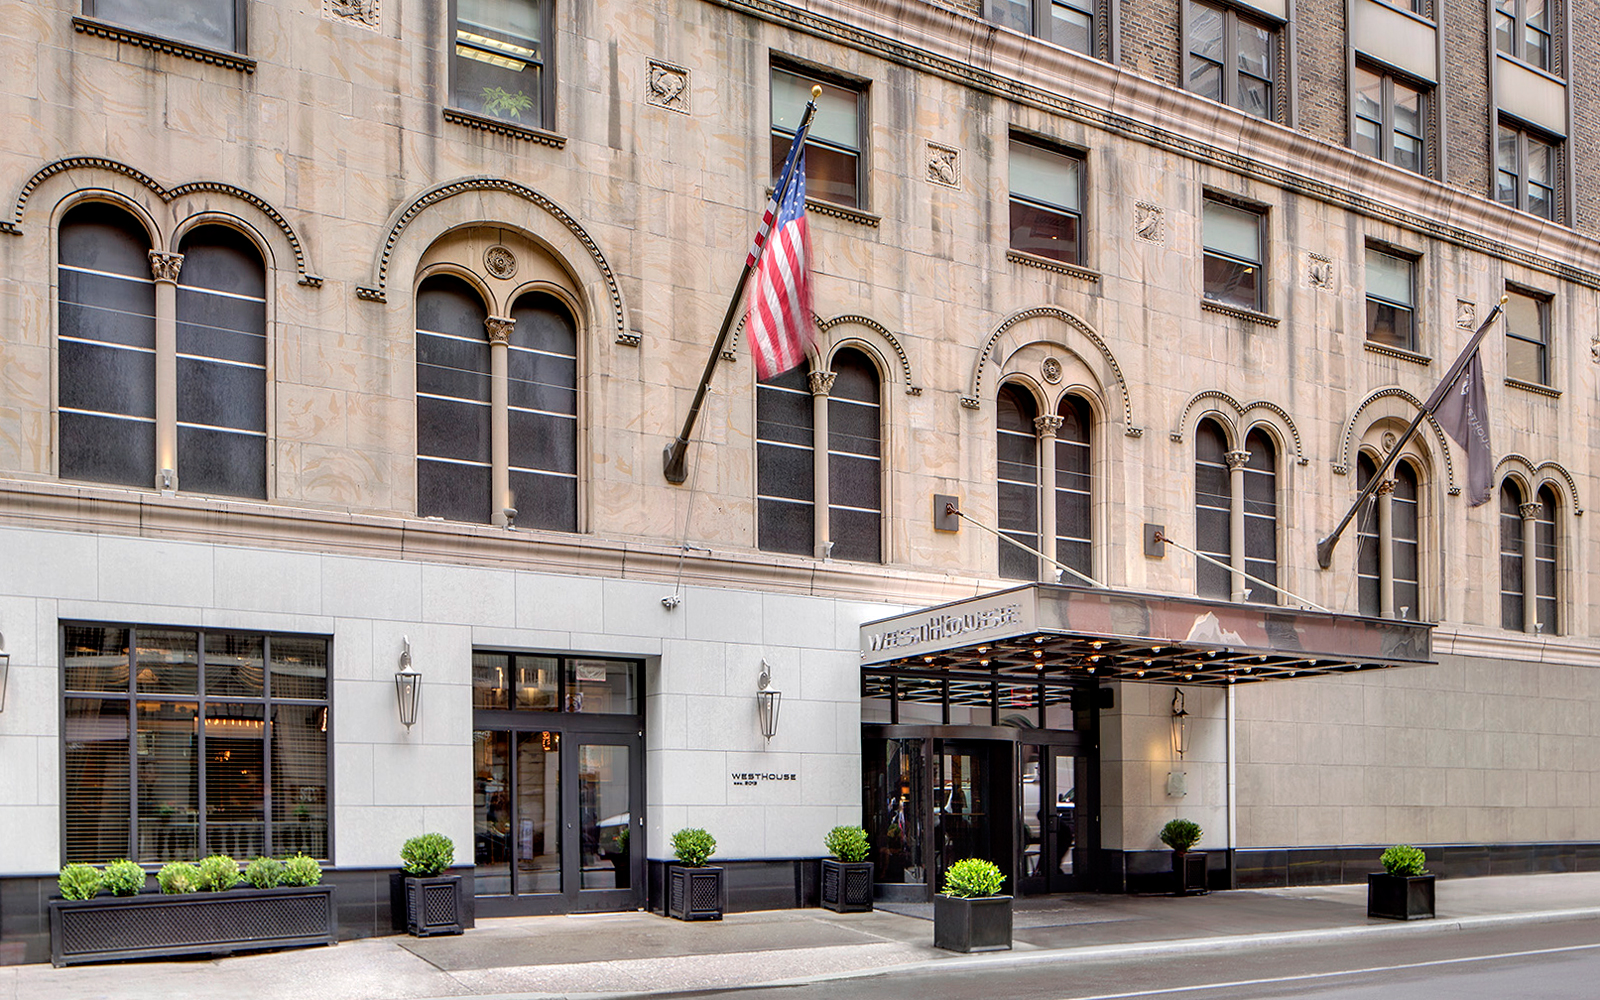 WestHouse Hotel, New York